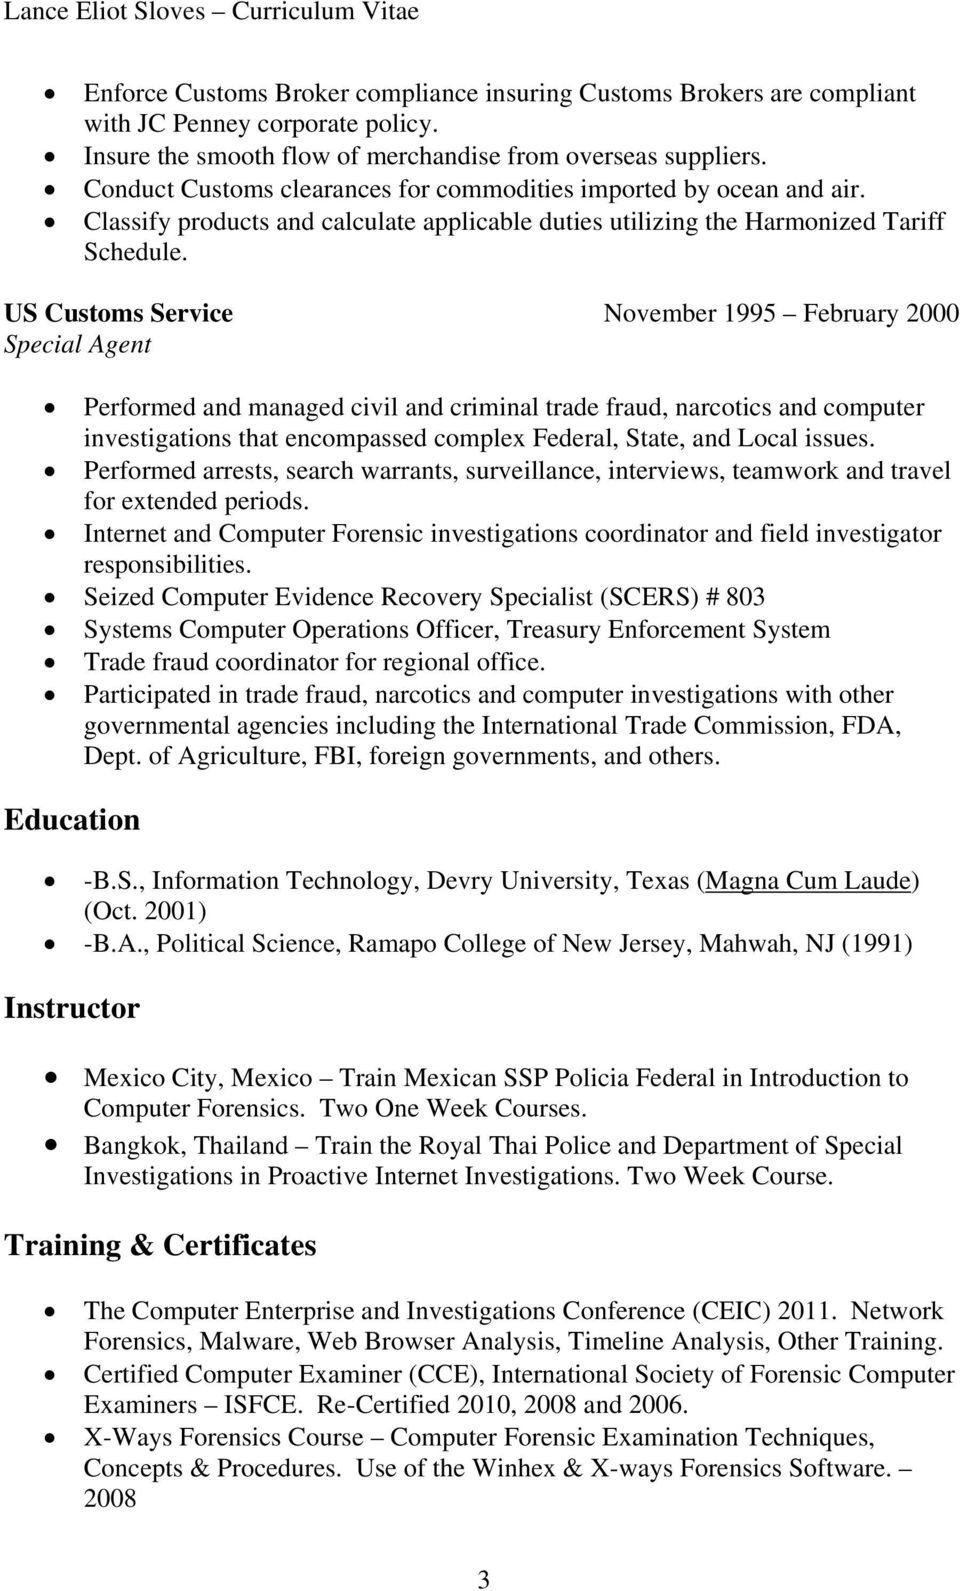 US Customs Service November 1995 February 2000 Special Agent Performed and managed civil and criminal trade fraud, narcotics and computer investigations that encompassed complex Federal, State, and